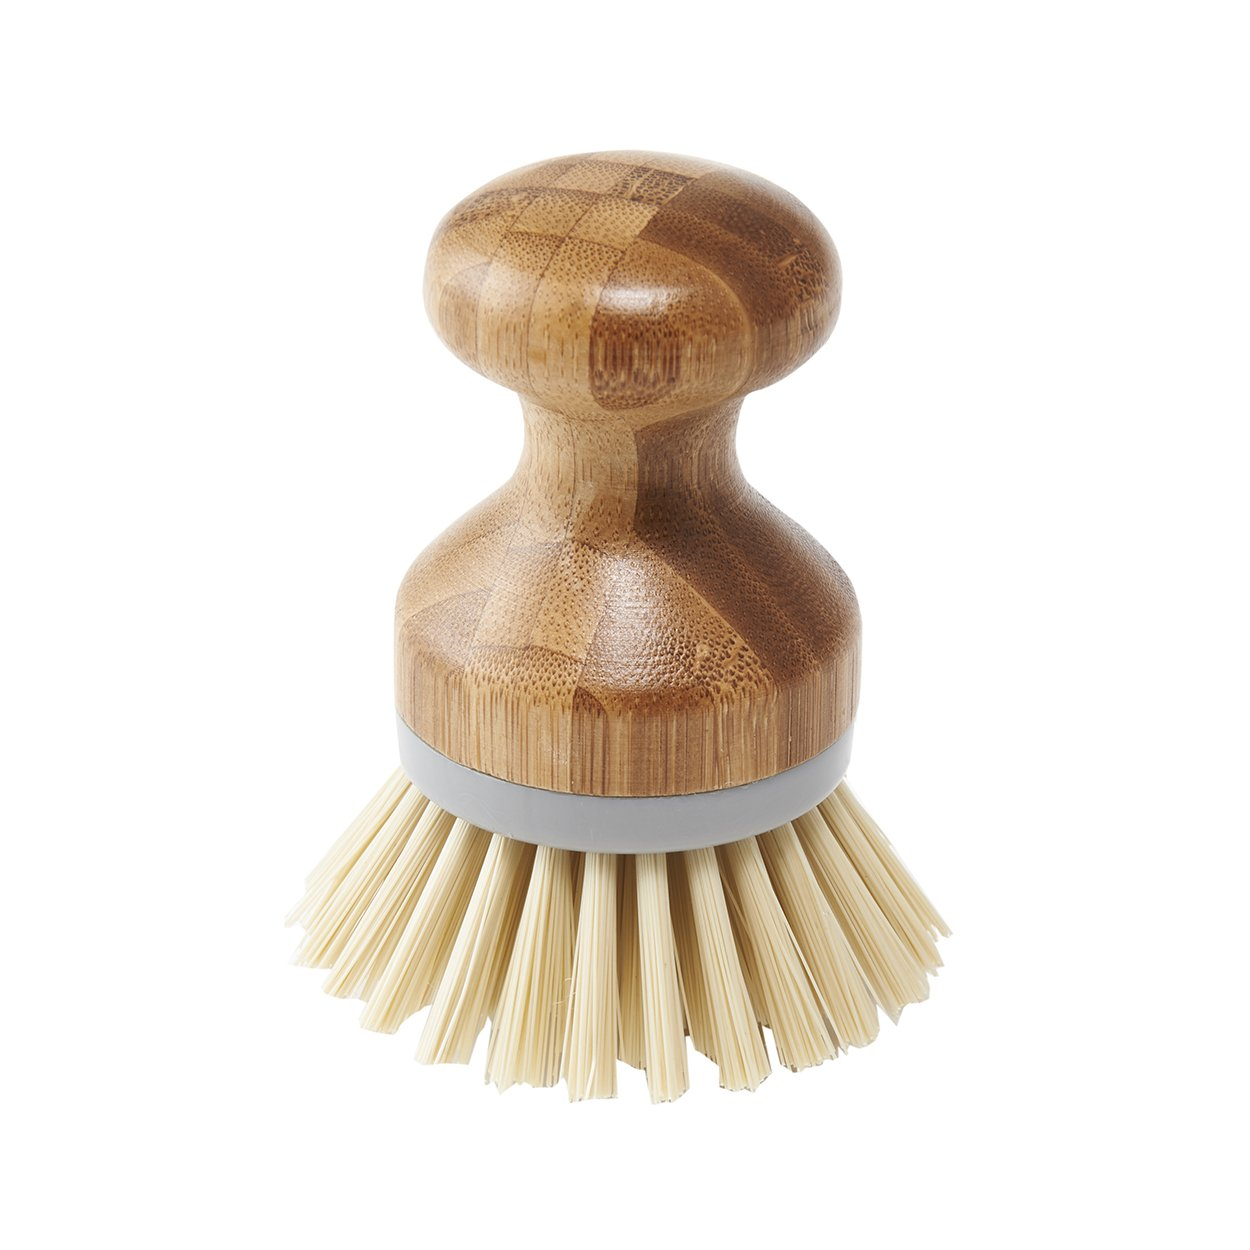 Addis Palm Dish Brush Natural and Grey, Bamboo, Grey/Wood, 6.7 x 6.7 x 9 cm